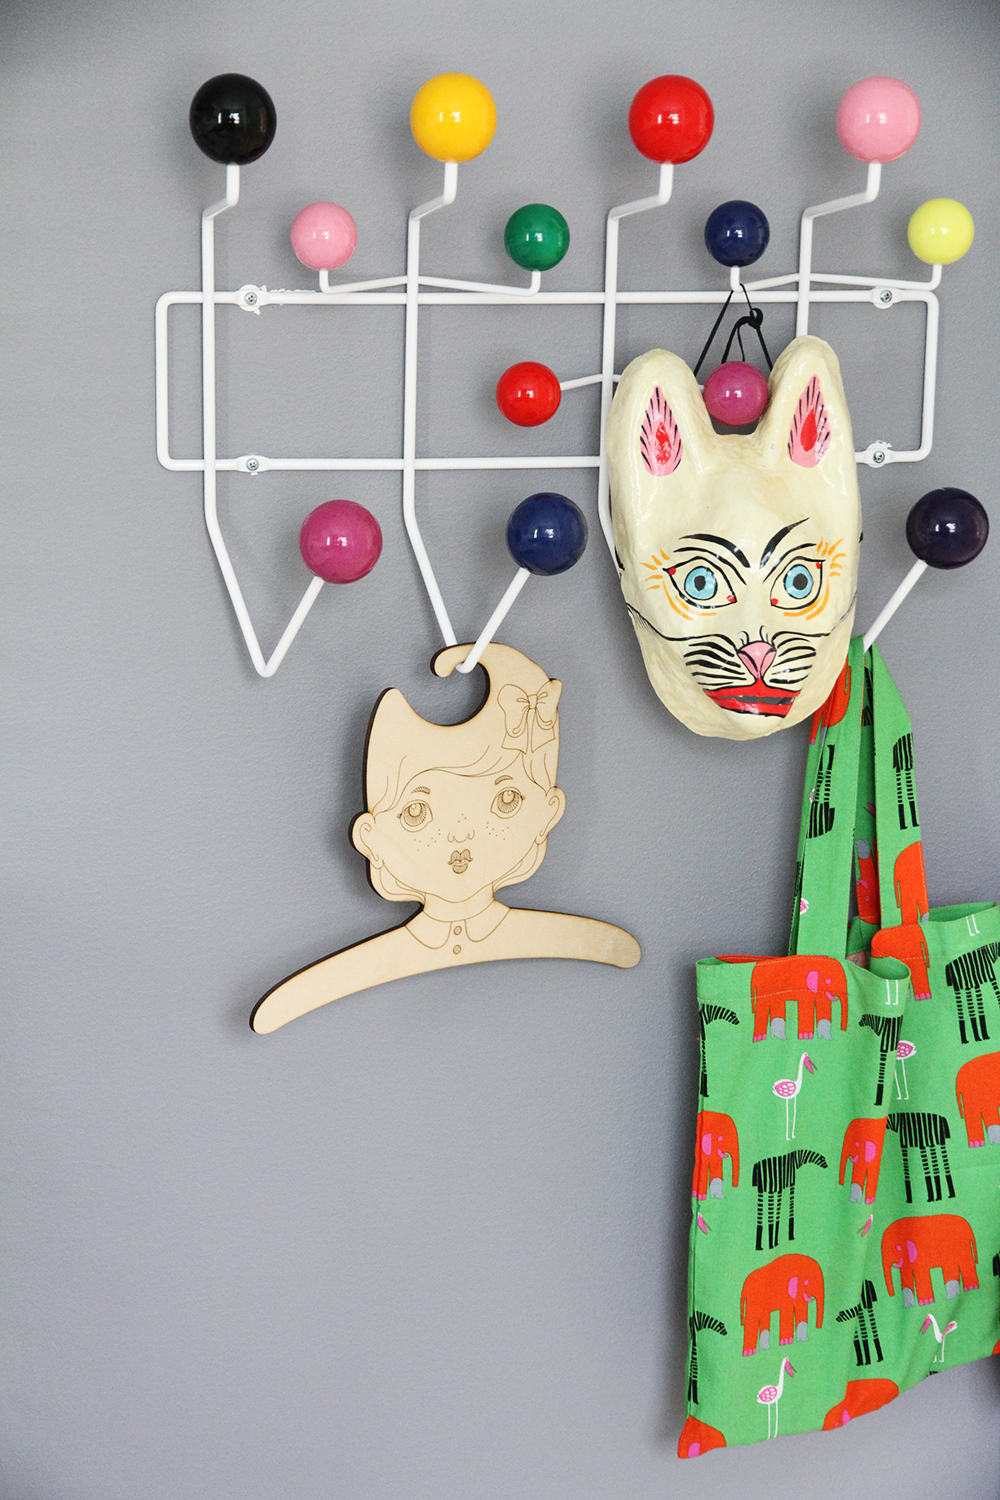 vitra hang it all hay mask poola kataryna hunajaista marimekko